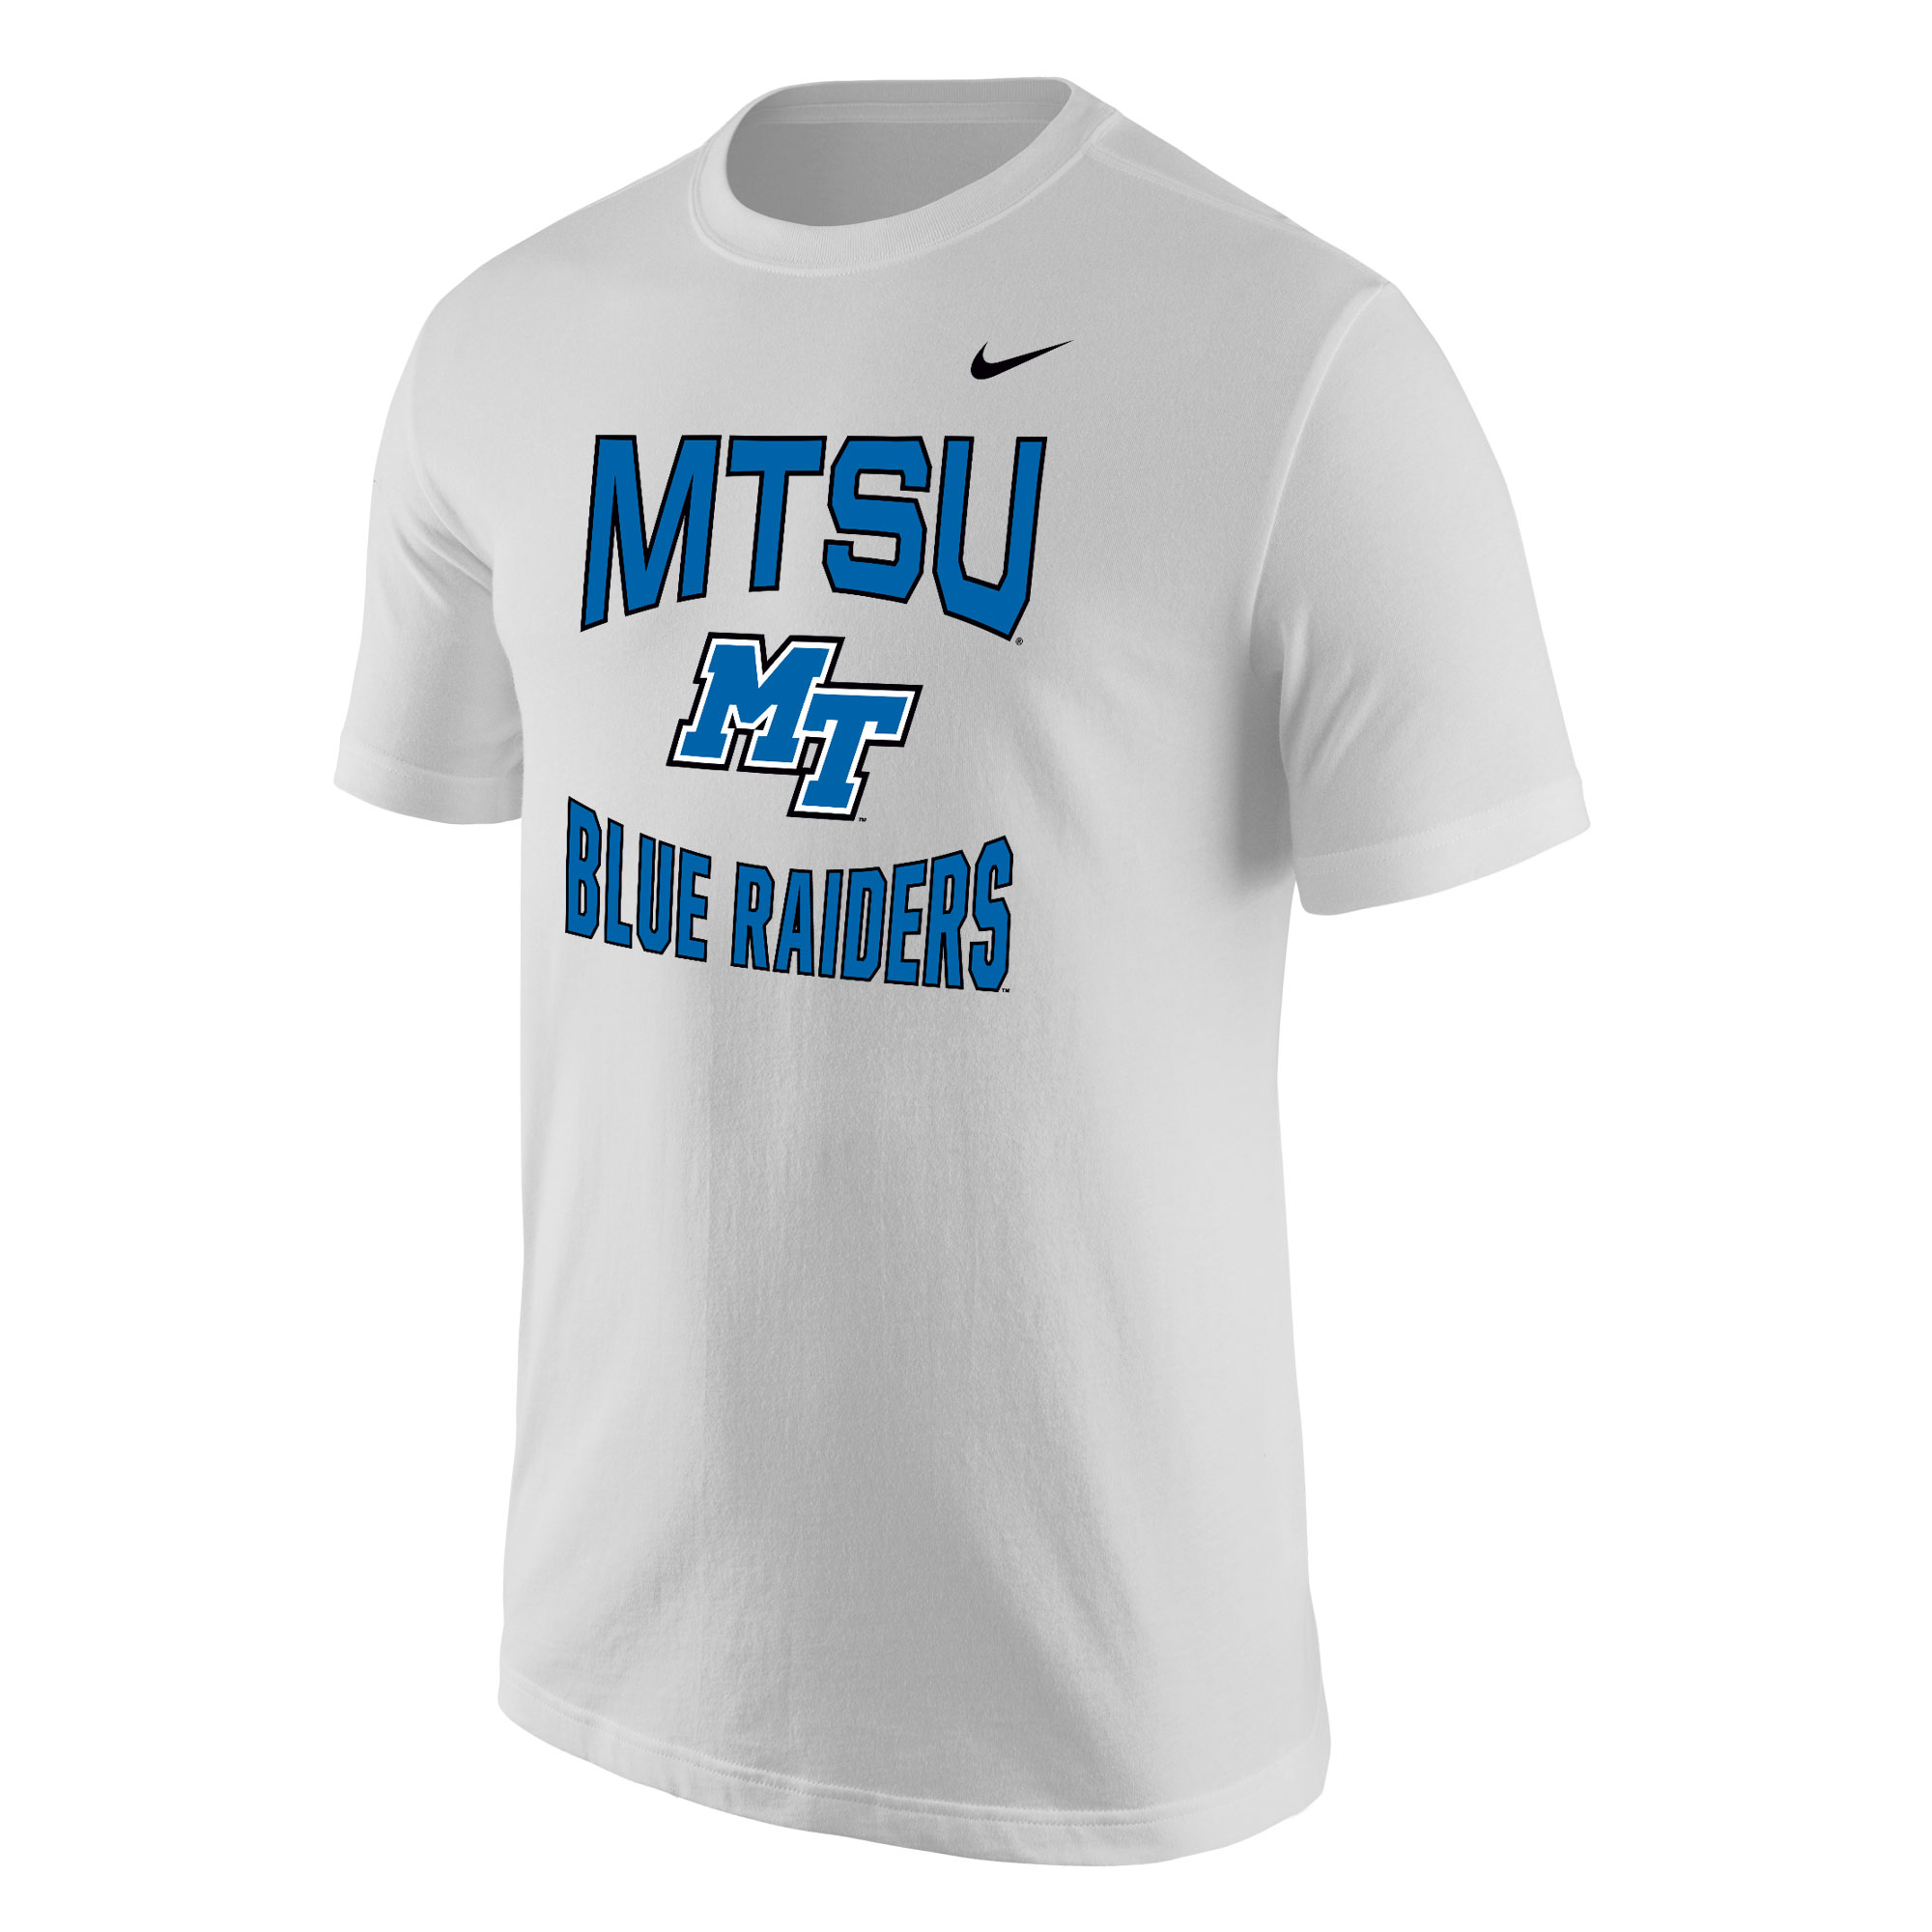 MTSU Raiders Core Cotton Nike® Shirt